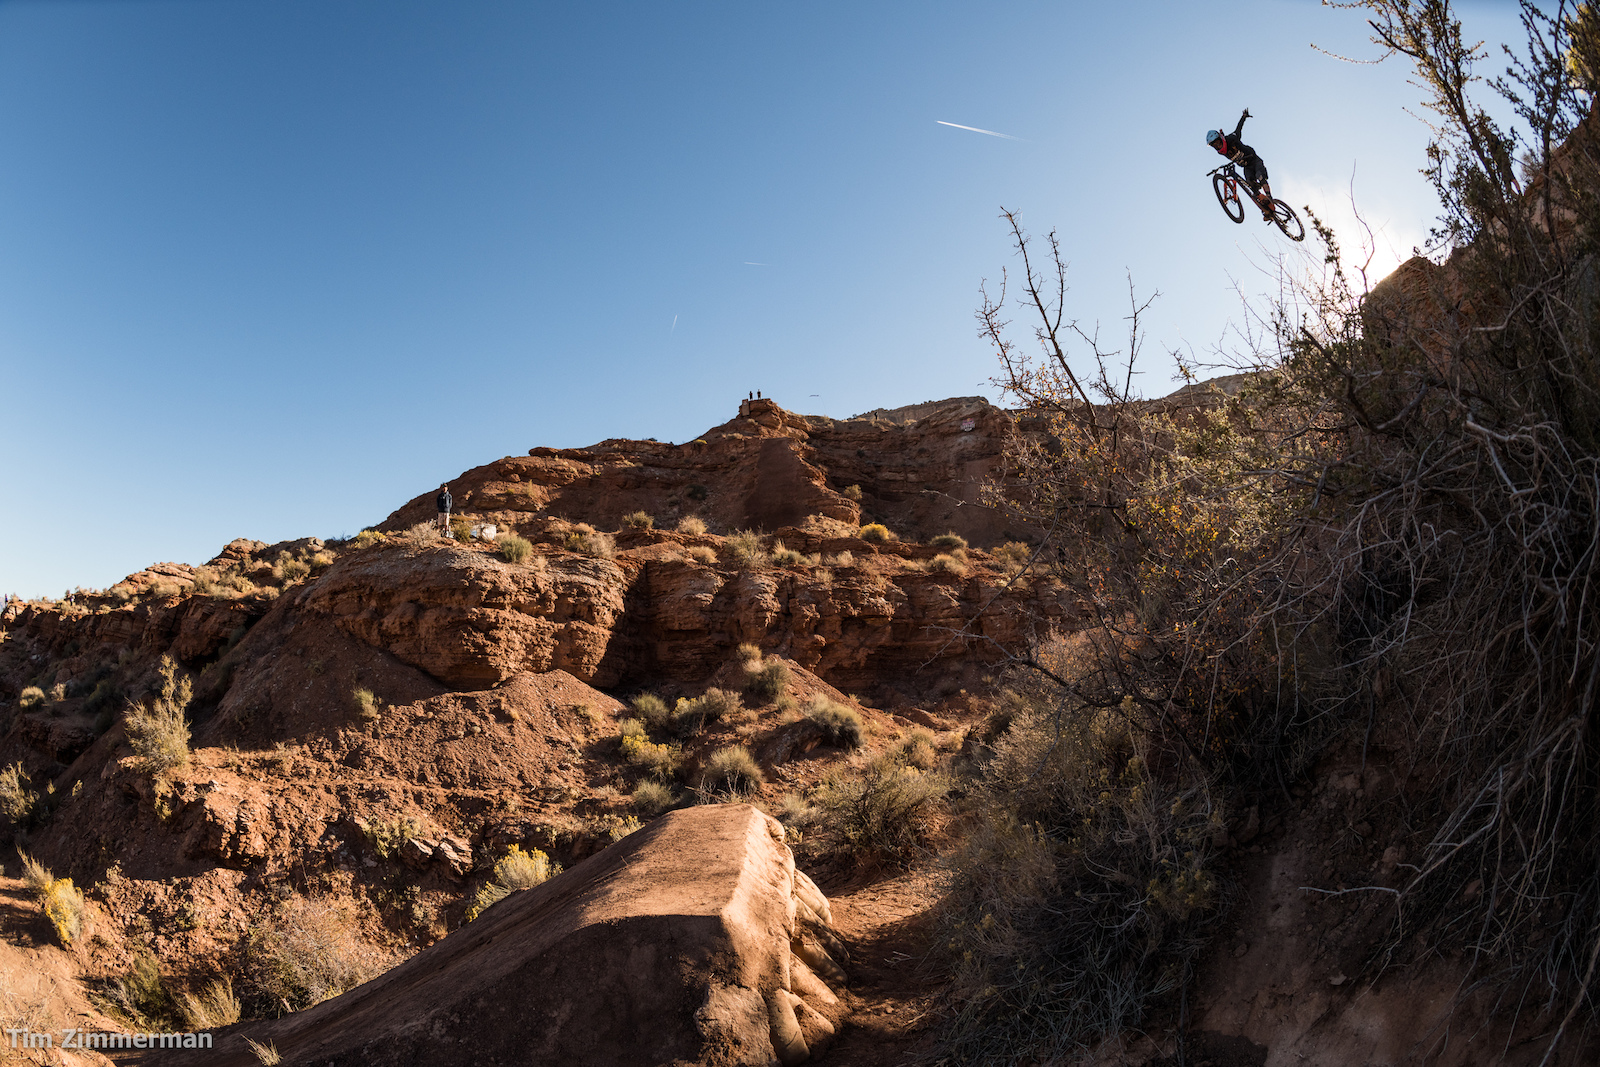 Brett Rheeder can step down without the use of a handrail. He can also hit a step down without using his hands.